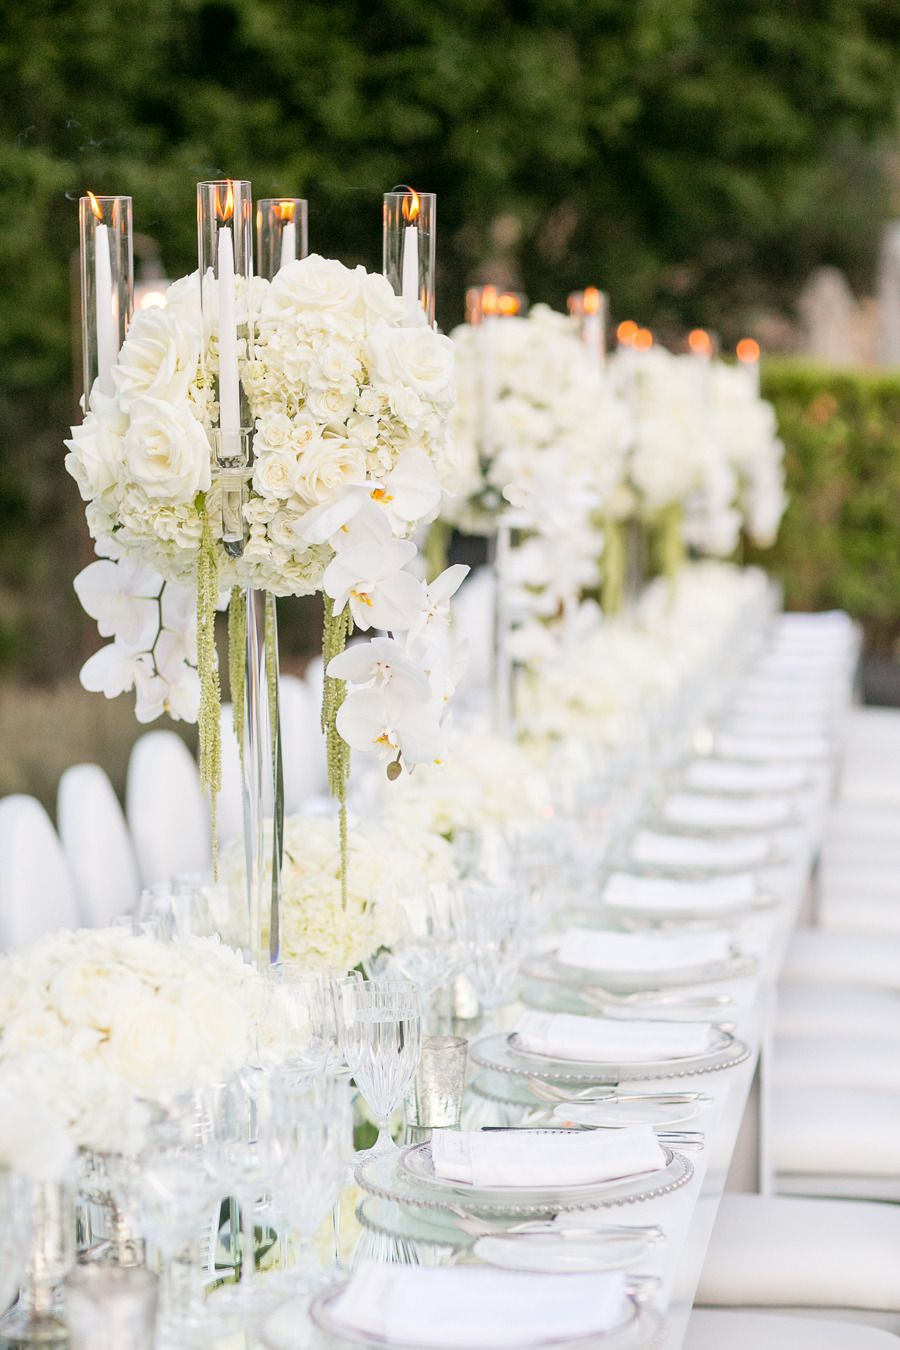 Wedding Centerpieces { Extravagant or Simple } | Centerpieces ...